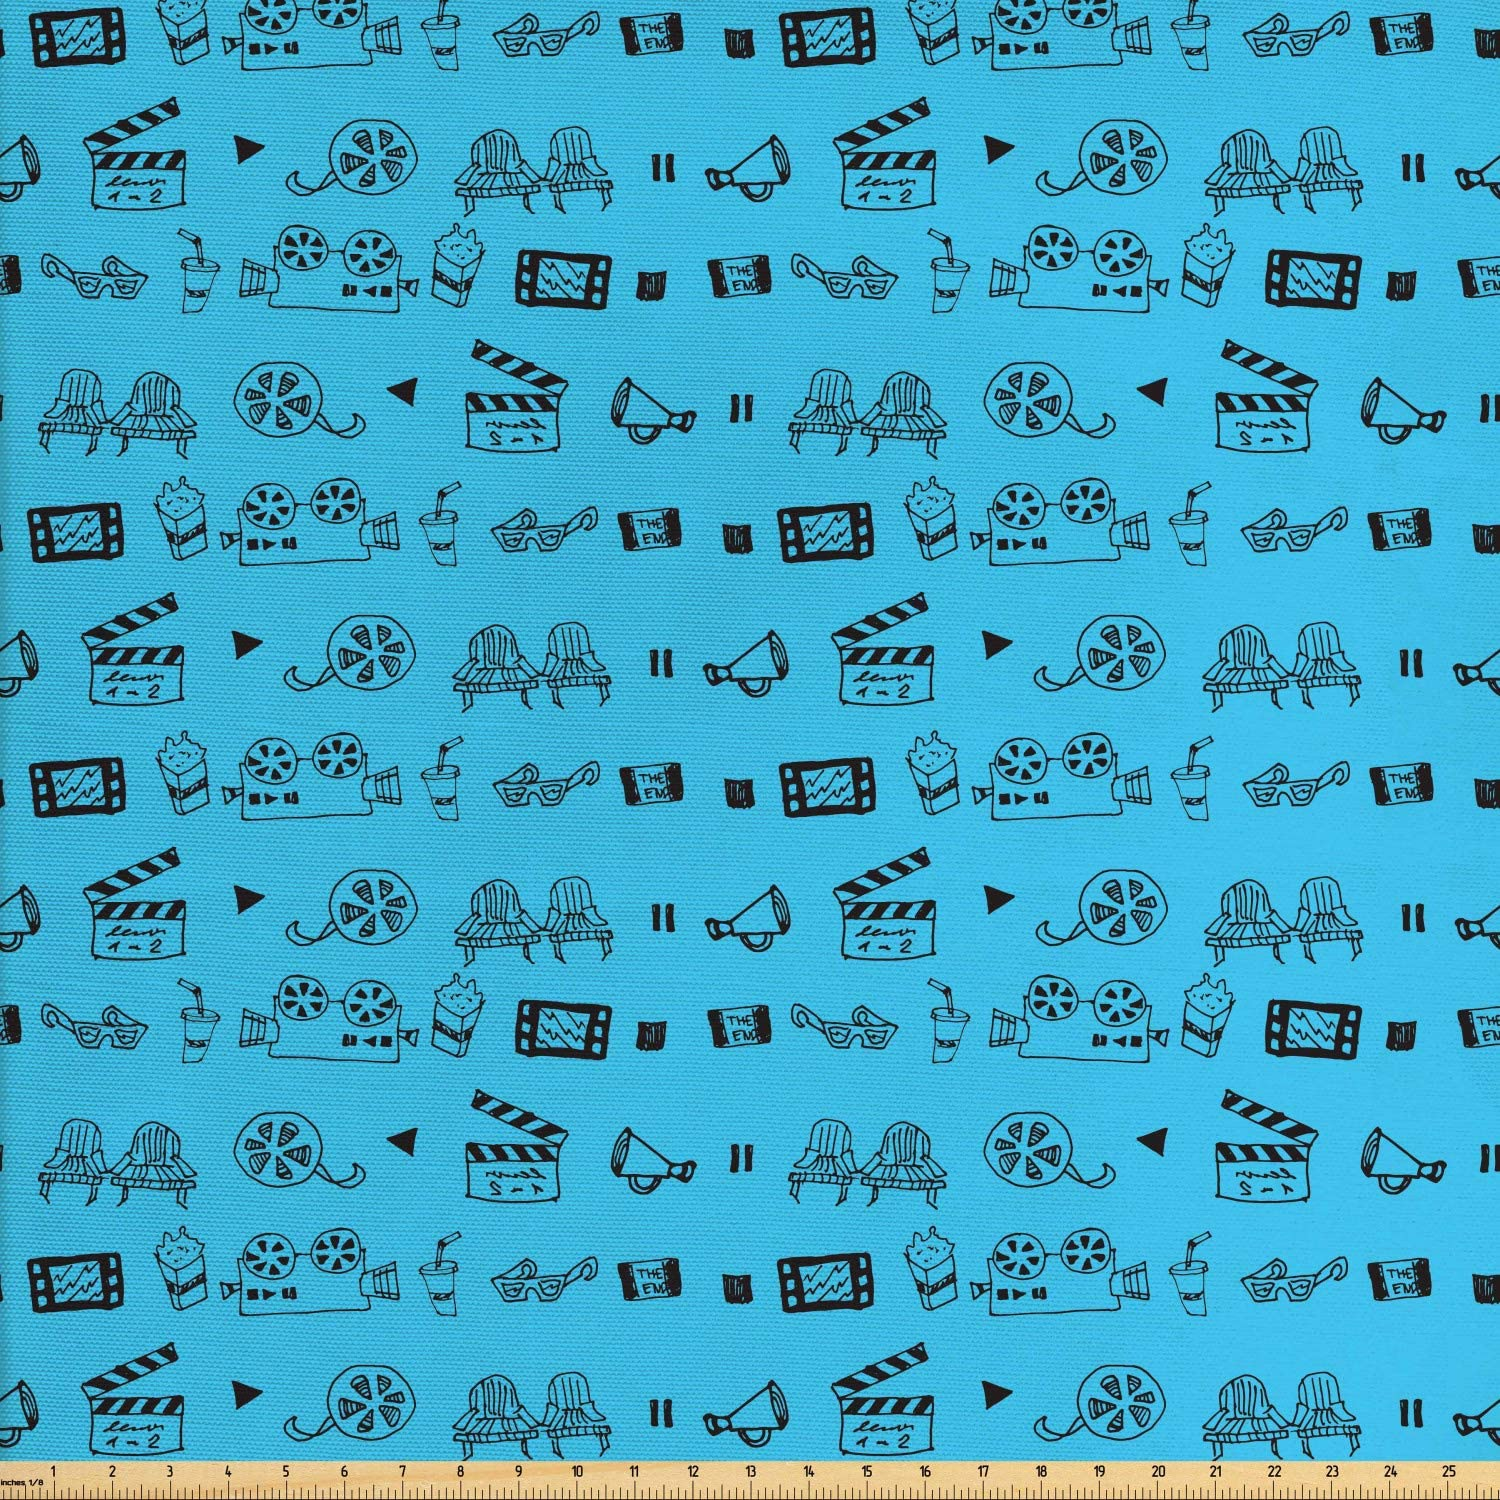 Ambesonne Blue and Black Fabric by The Yard, Doodle Style Cinema Movie Theater Camera Seat Popcorn Clapper, Decorative Fabric for Upholstery and Home Accents, 1 Yard, Blue Black